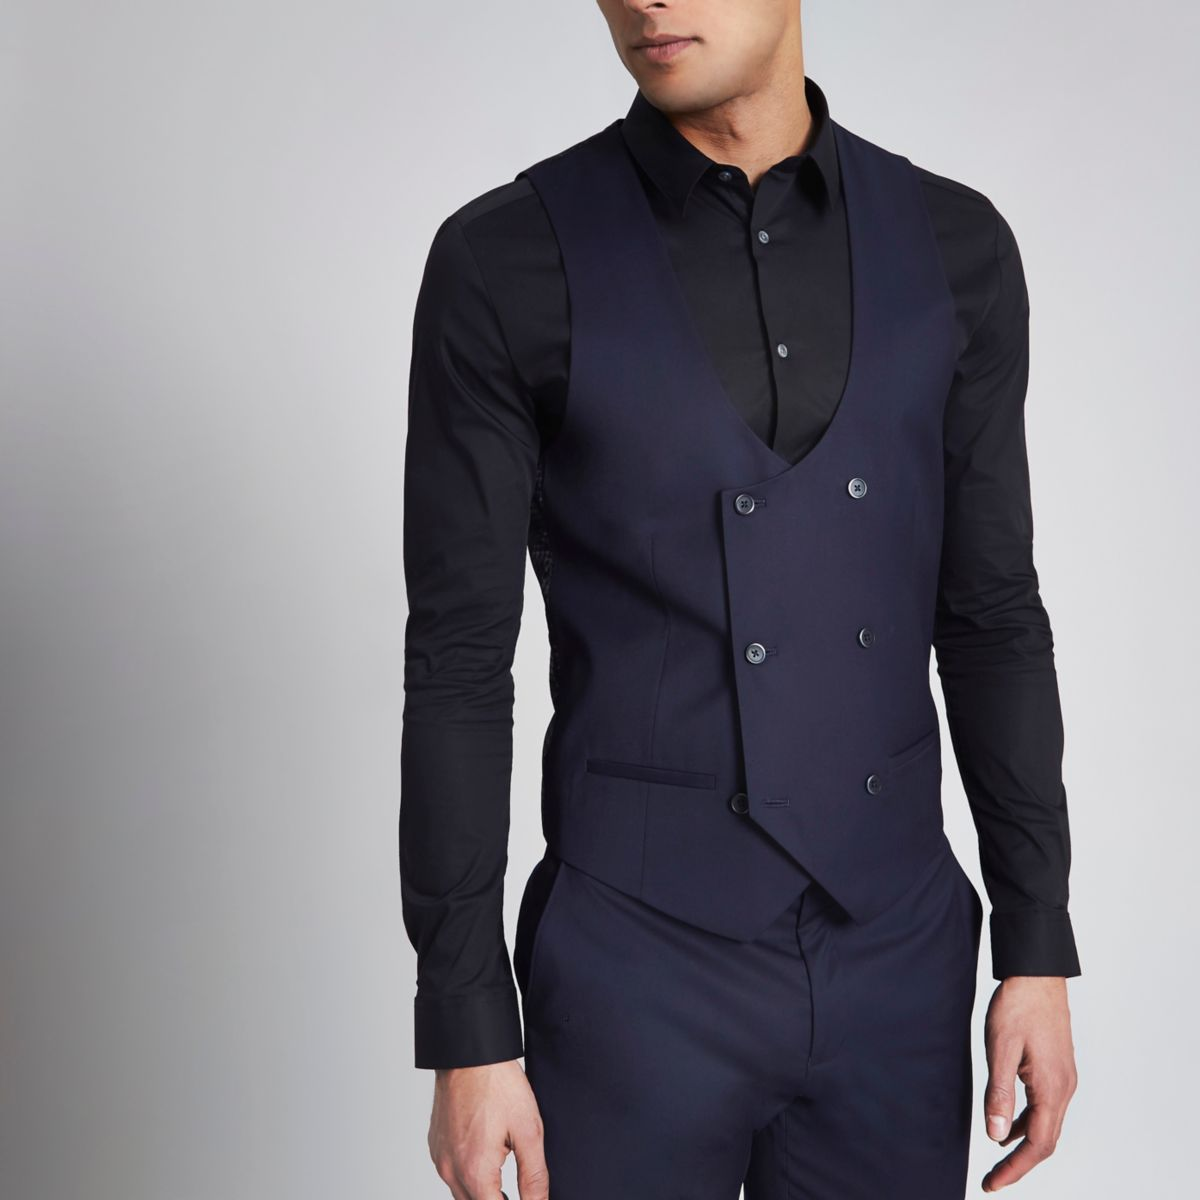 Navy double breasted tuxedo waistcoat